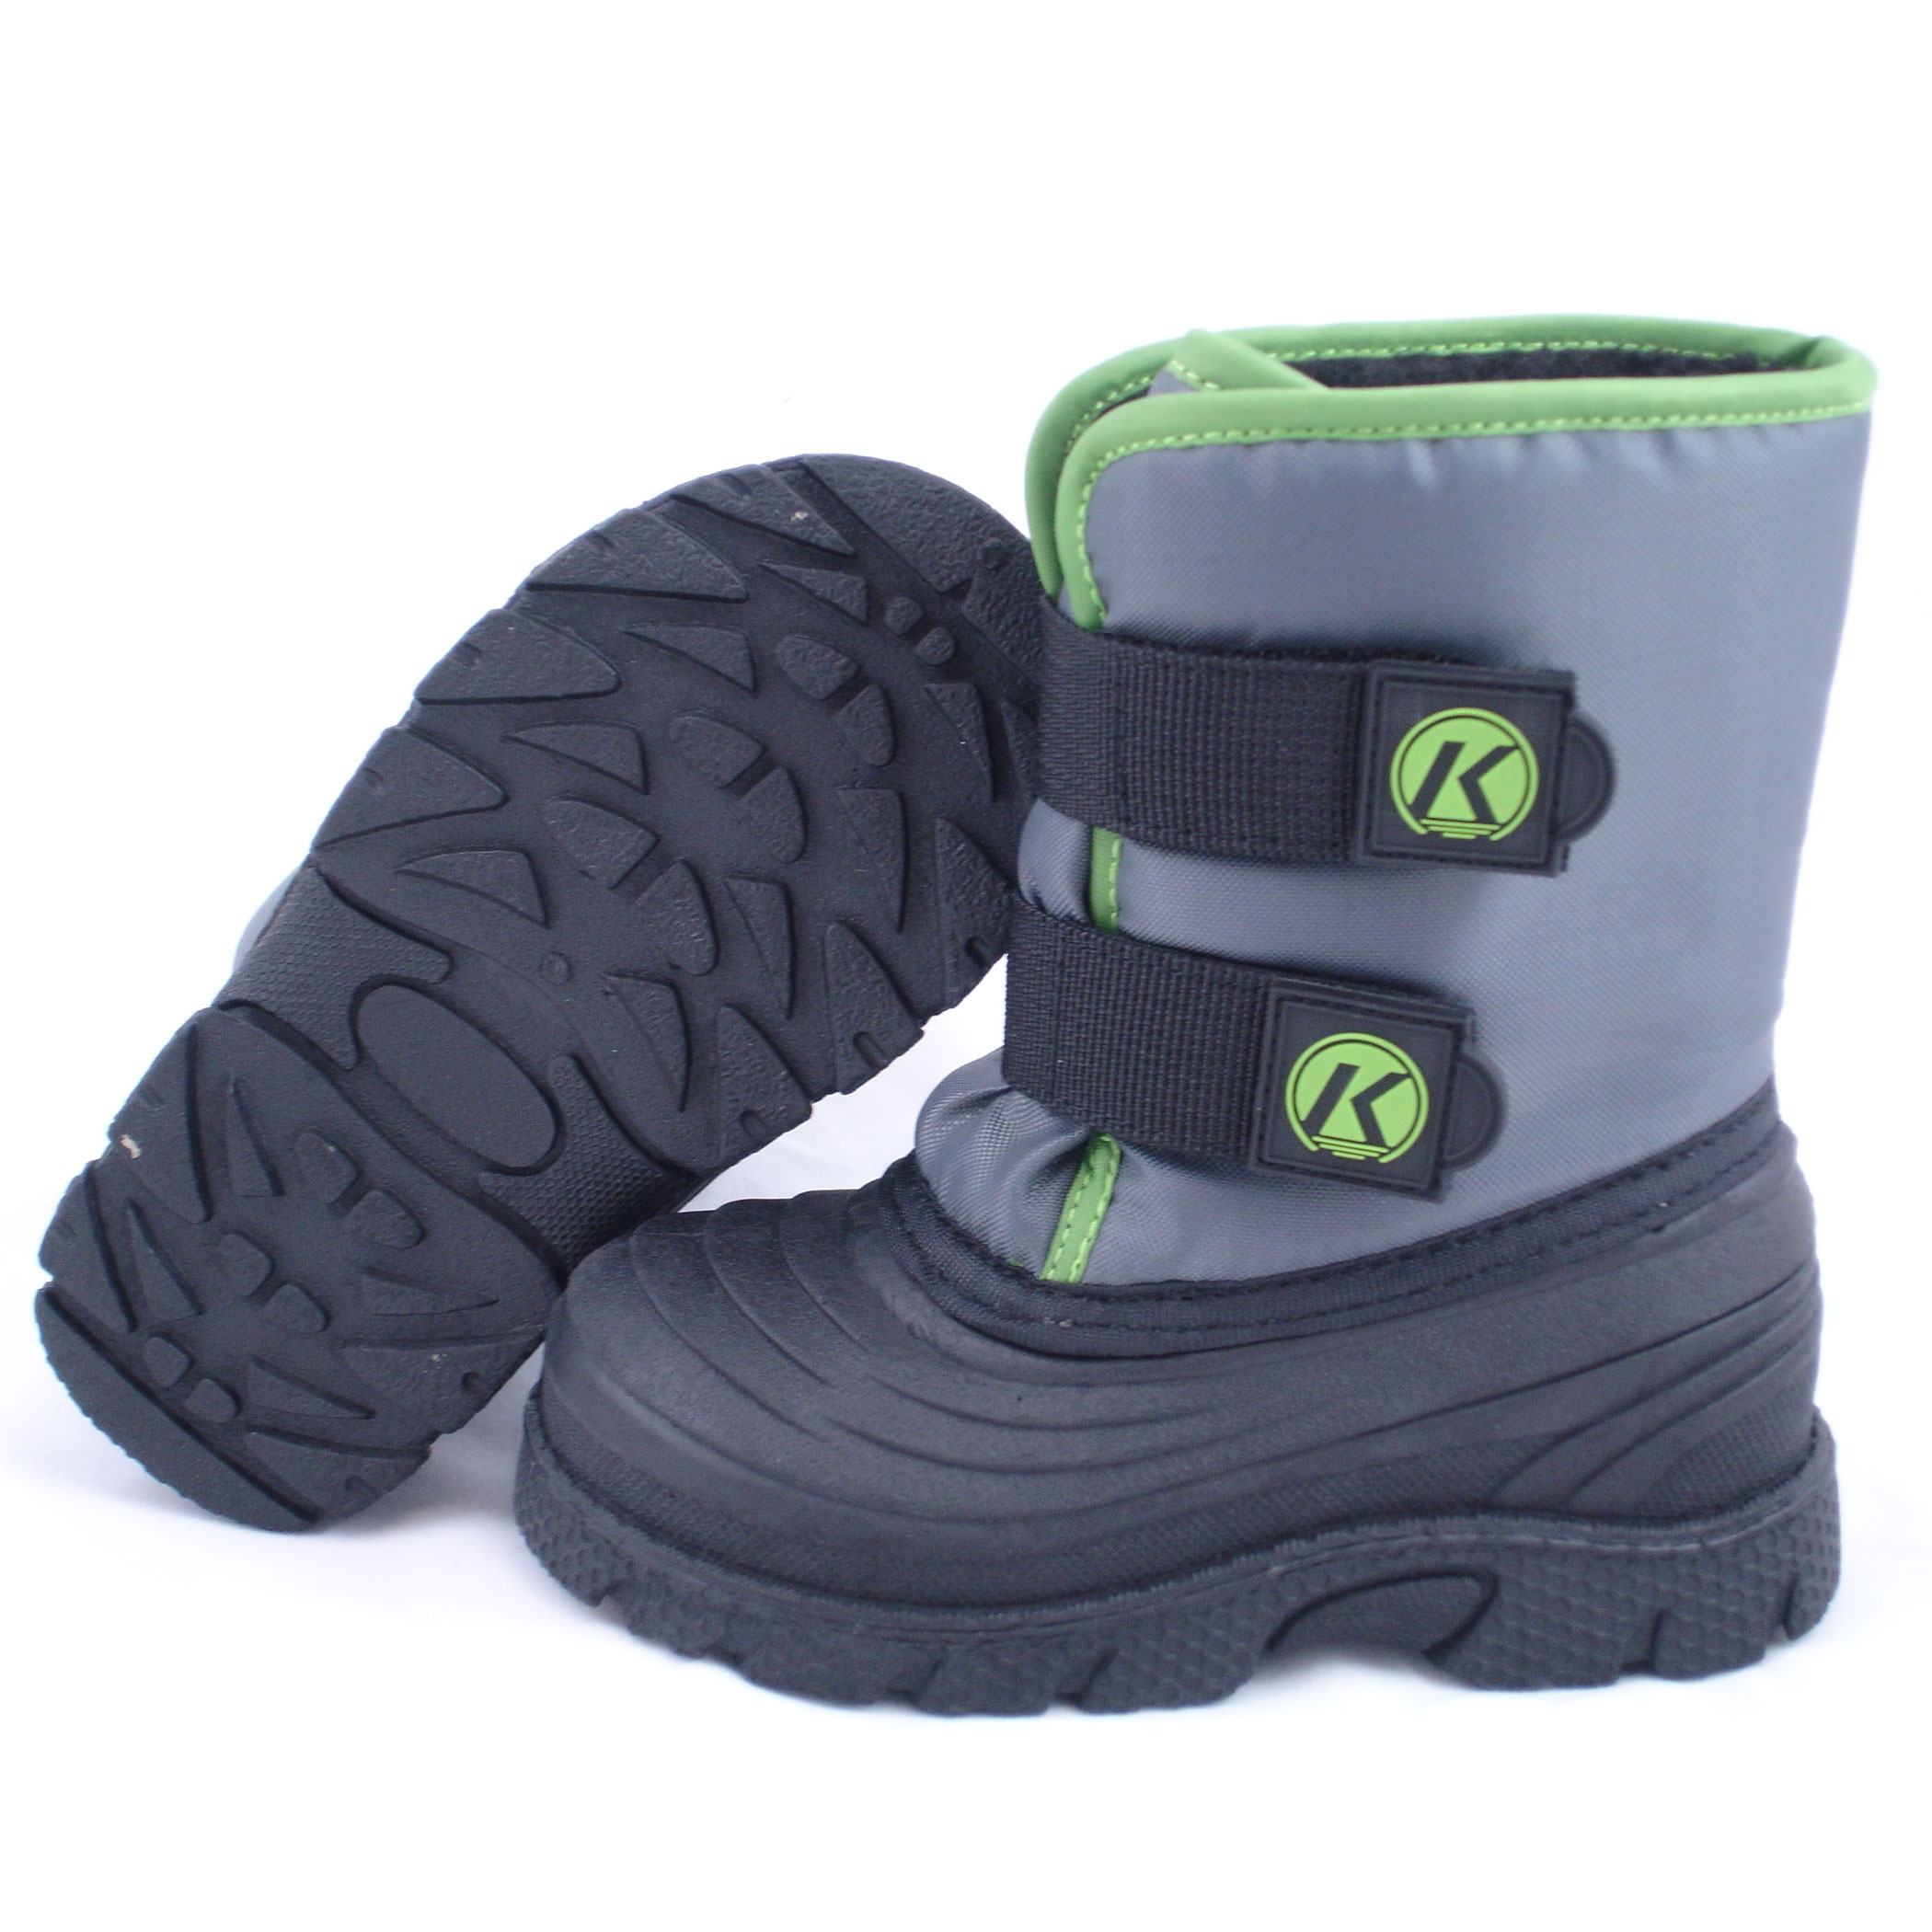 Kids winter boots clipart.